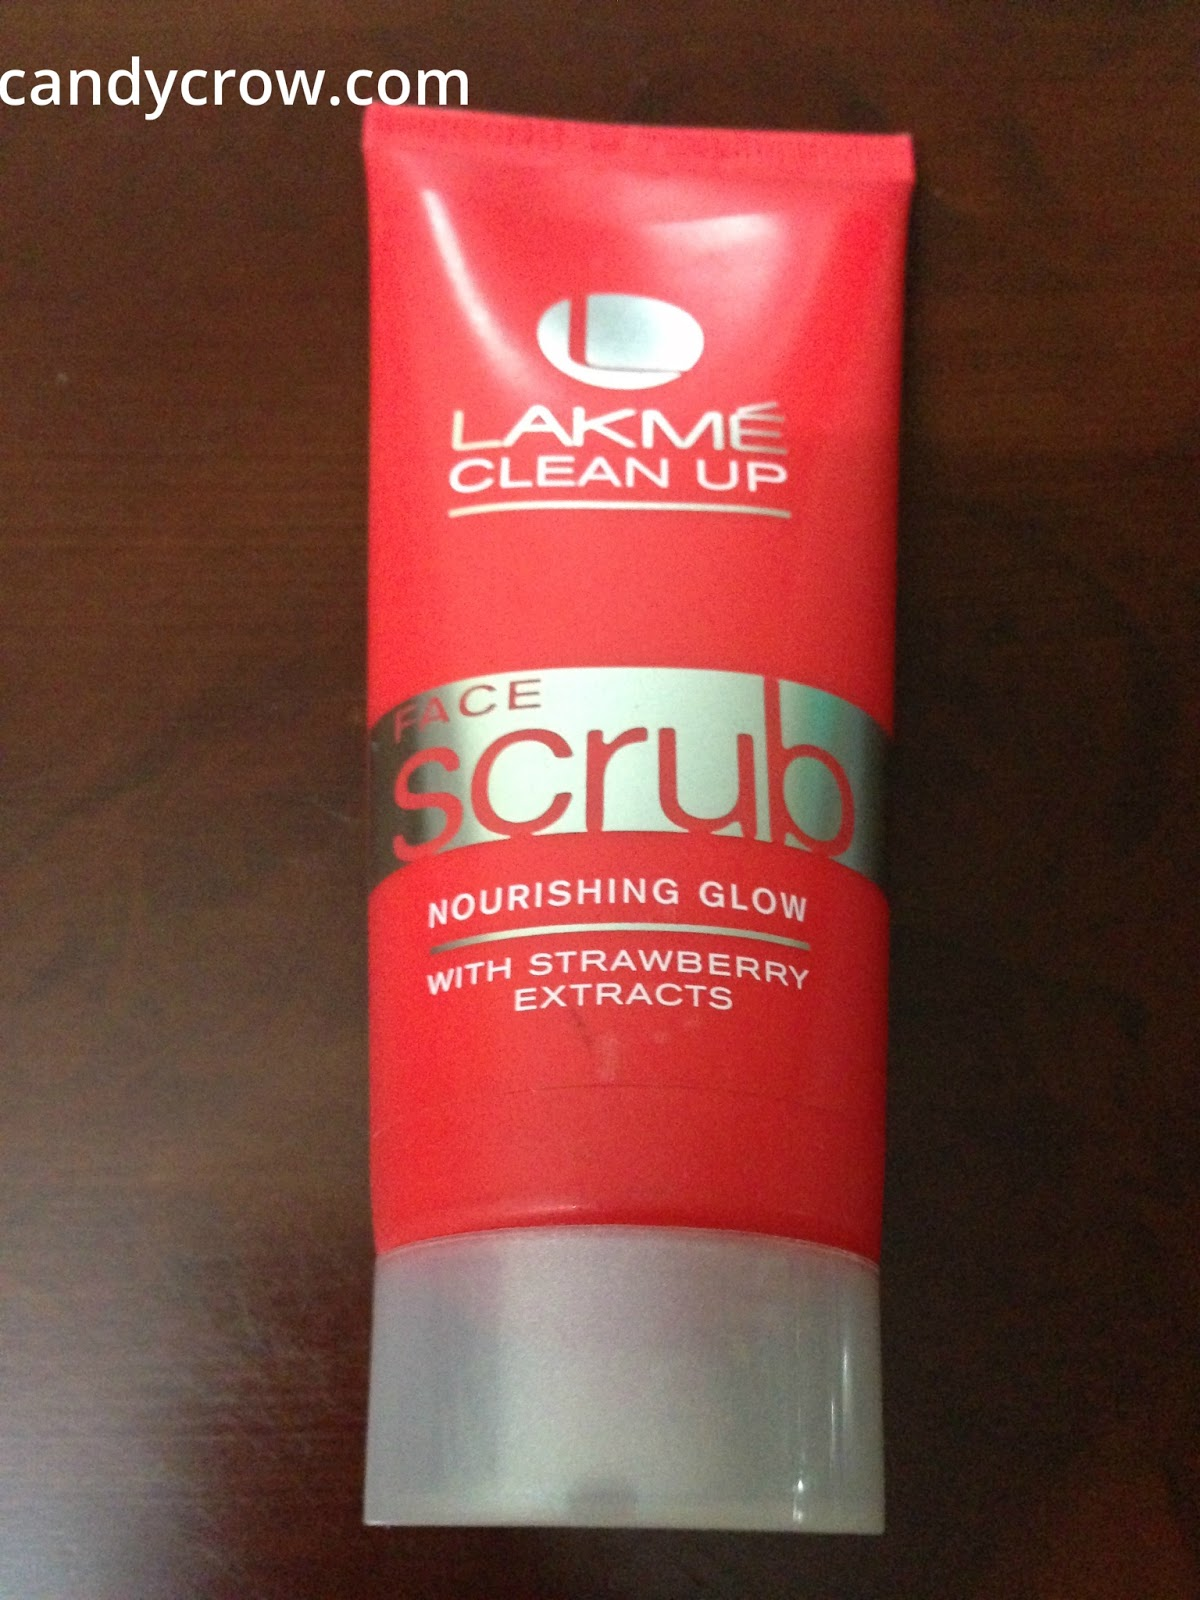 Lakme Clean up Glow Face Scurb Review